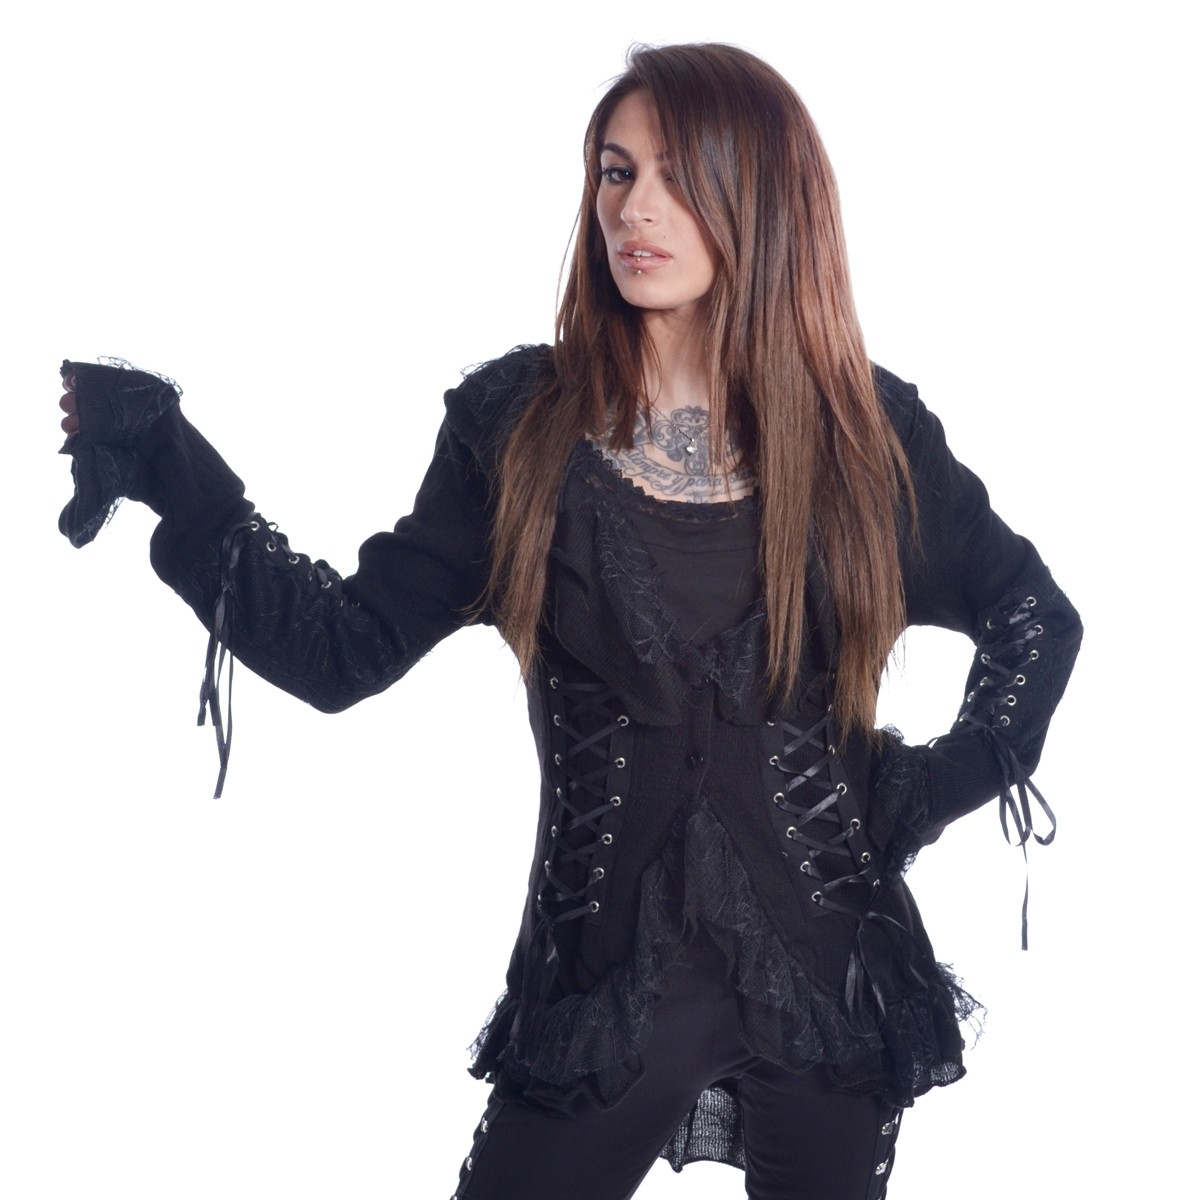 POIZEN INDUSTRIES - 4726 GOTHIC JACKET LADIES BLACK SIZE M/L CLEARANCE